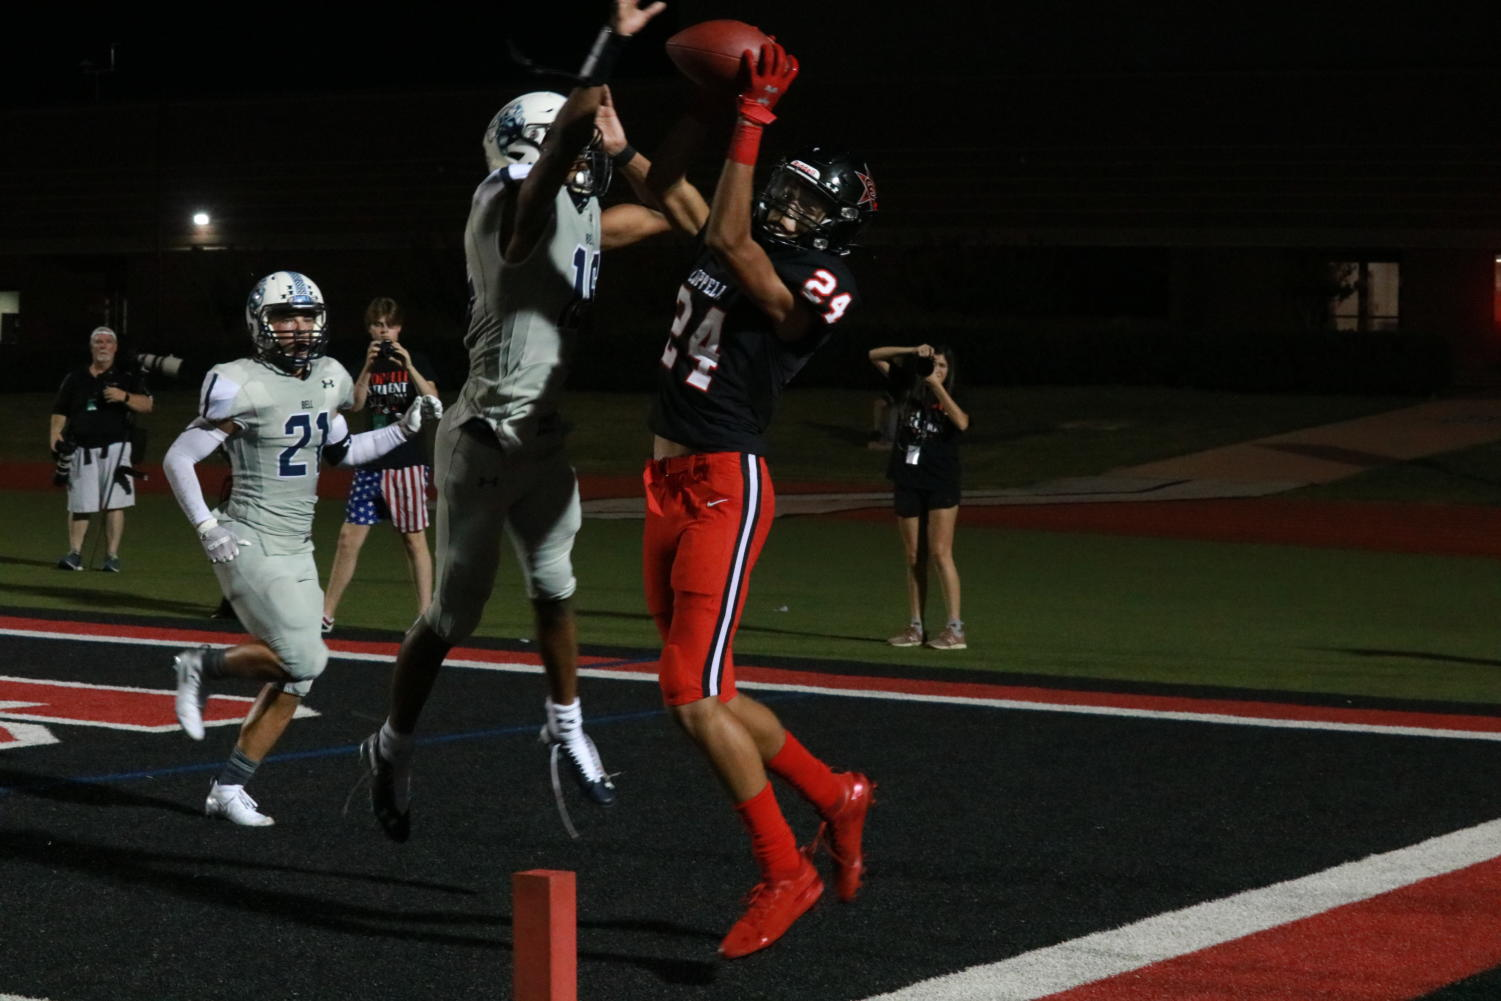 Coppell sophomore wide receiver Anthony Black attempts to make a catch in the endzone. The Cowboys won their first home game of the season, 17-10, against L.D. Bell on Friday night at Buddy Echols Field.